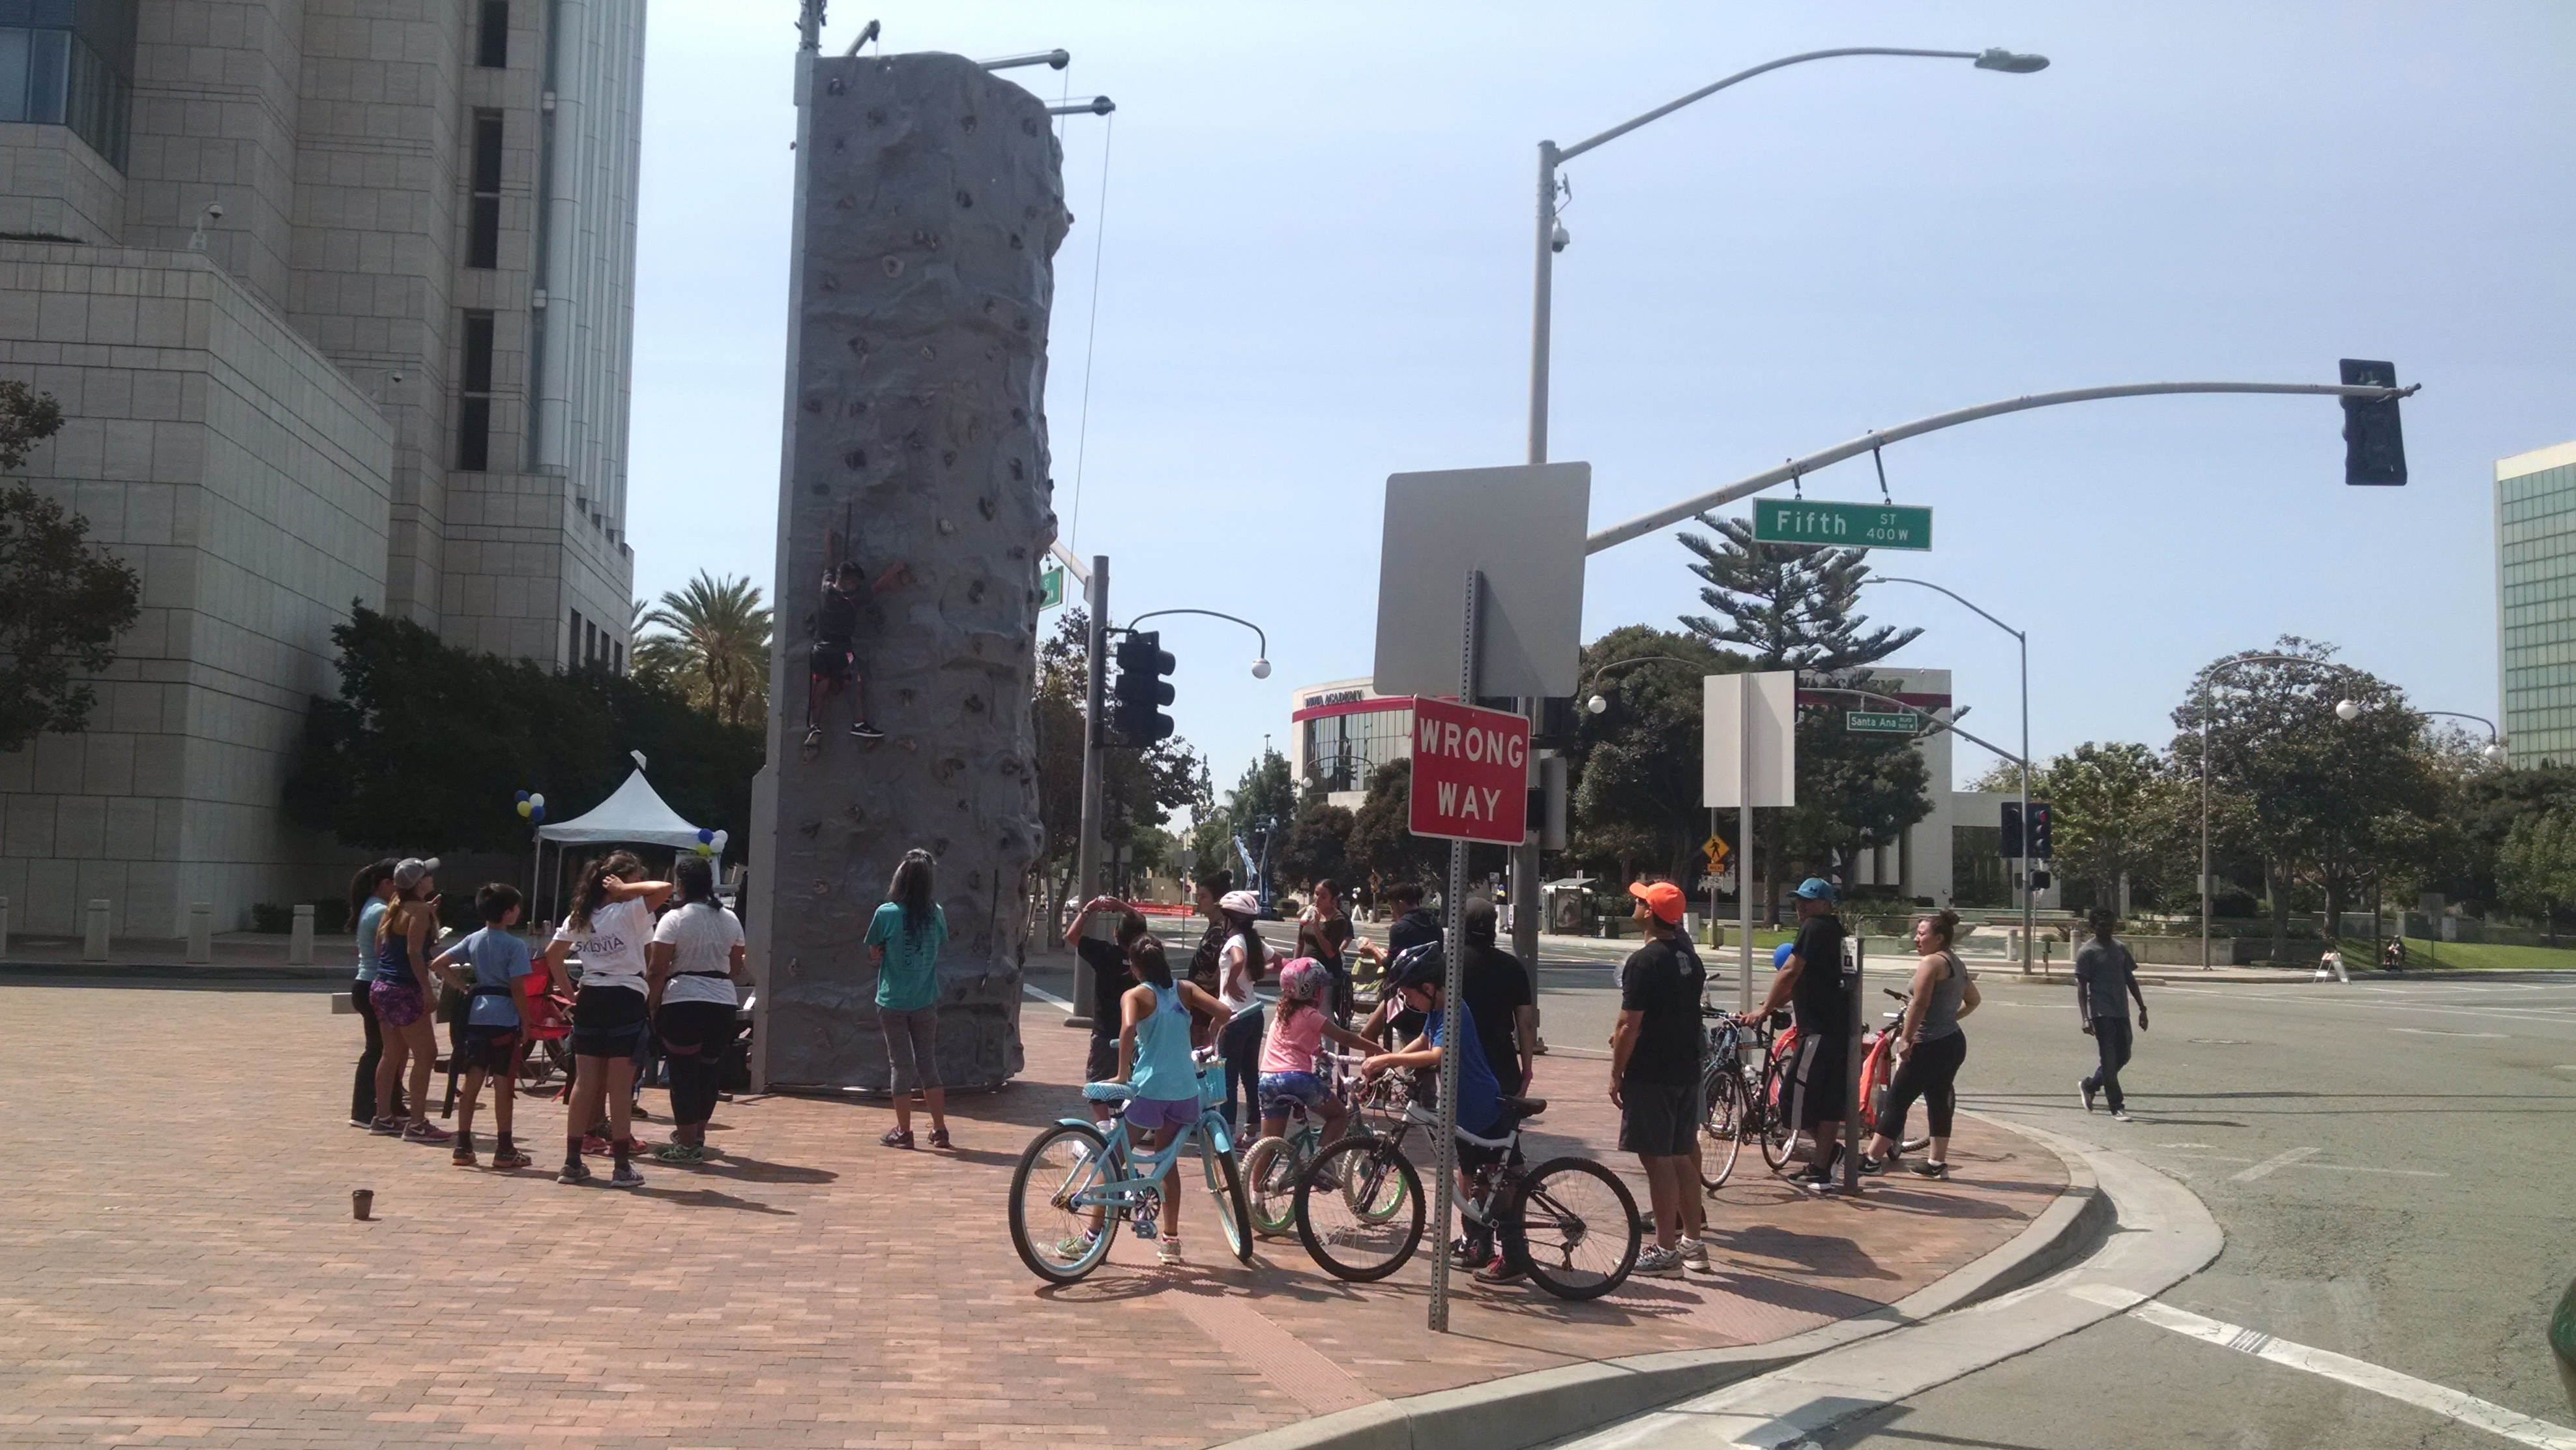 Rockwall at the corner of Civic Center Drive and Flower Street during this year's 5k/Ciclovia. Photo by Kristopher Fortin.